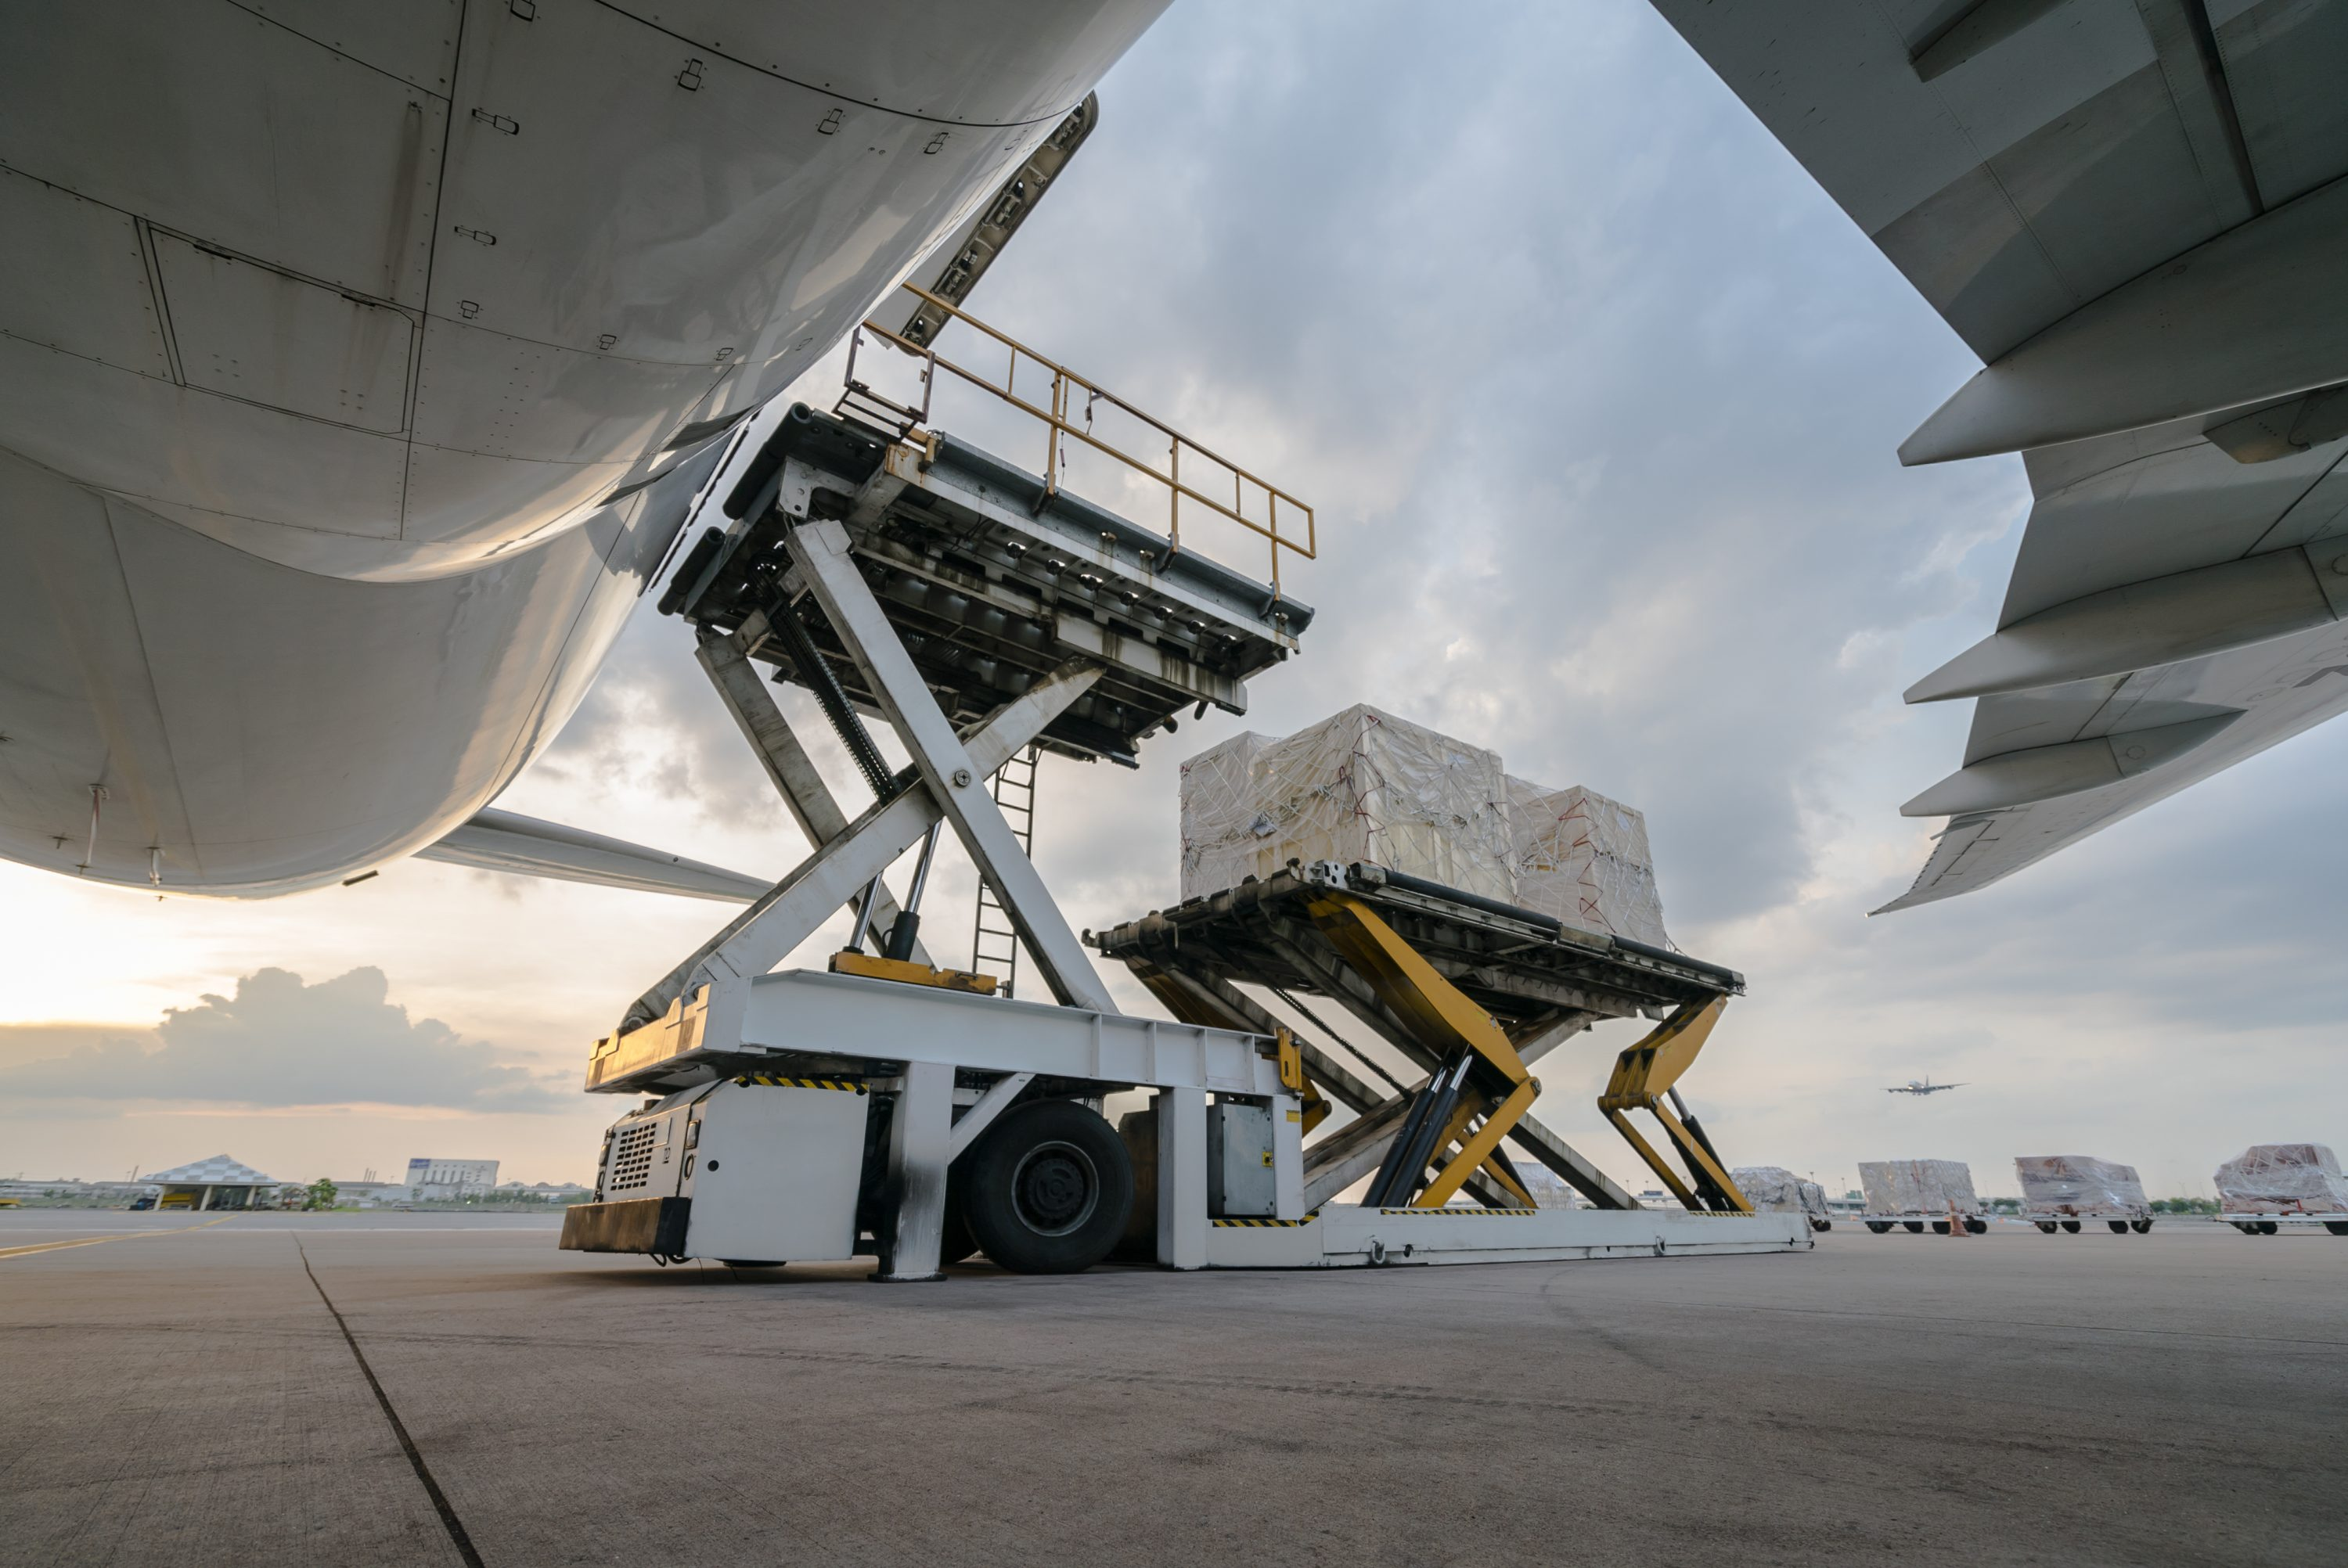 Cargo being loaded onto aircraft with scissor lift